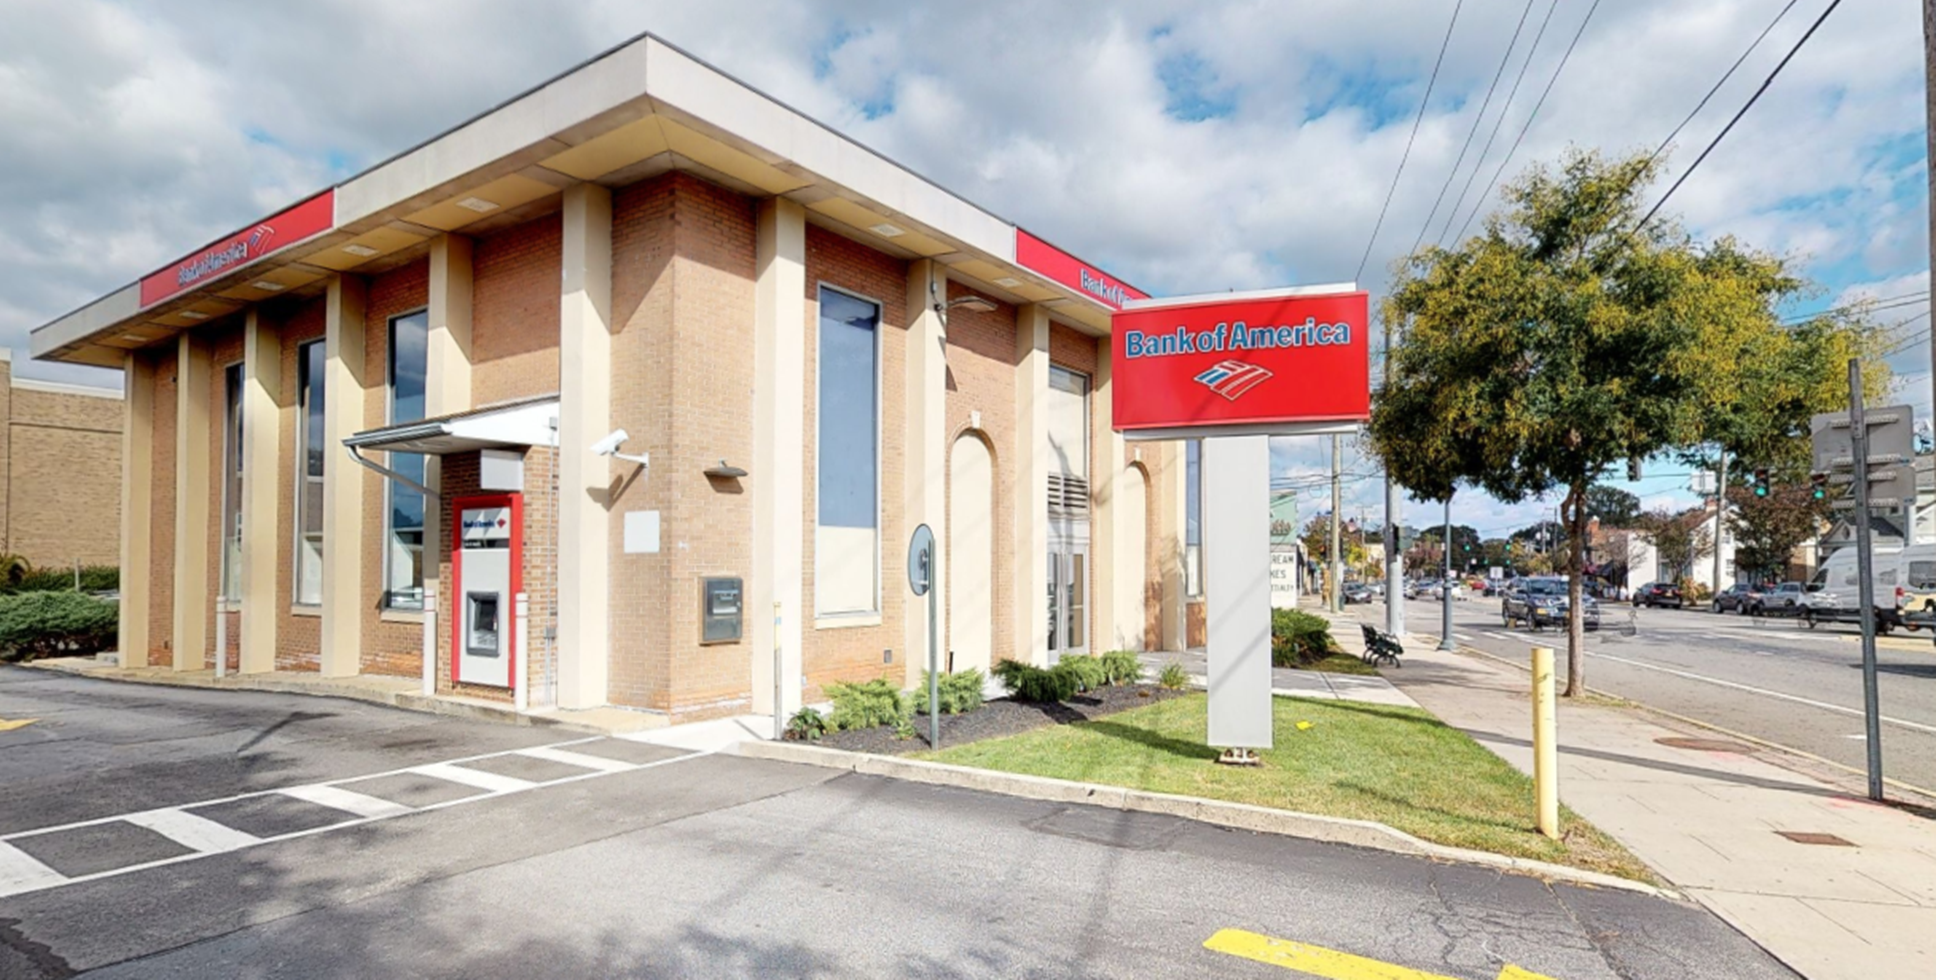 Bank of America financial center with drive-thru ATM | 100 Hillside Ave, Williston Park, NY 11596